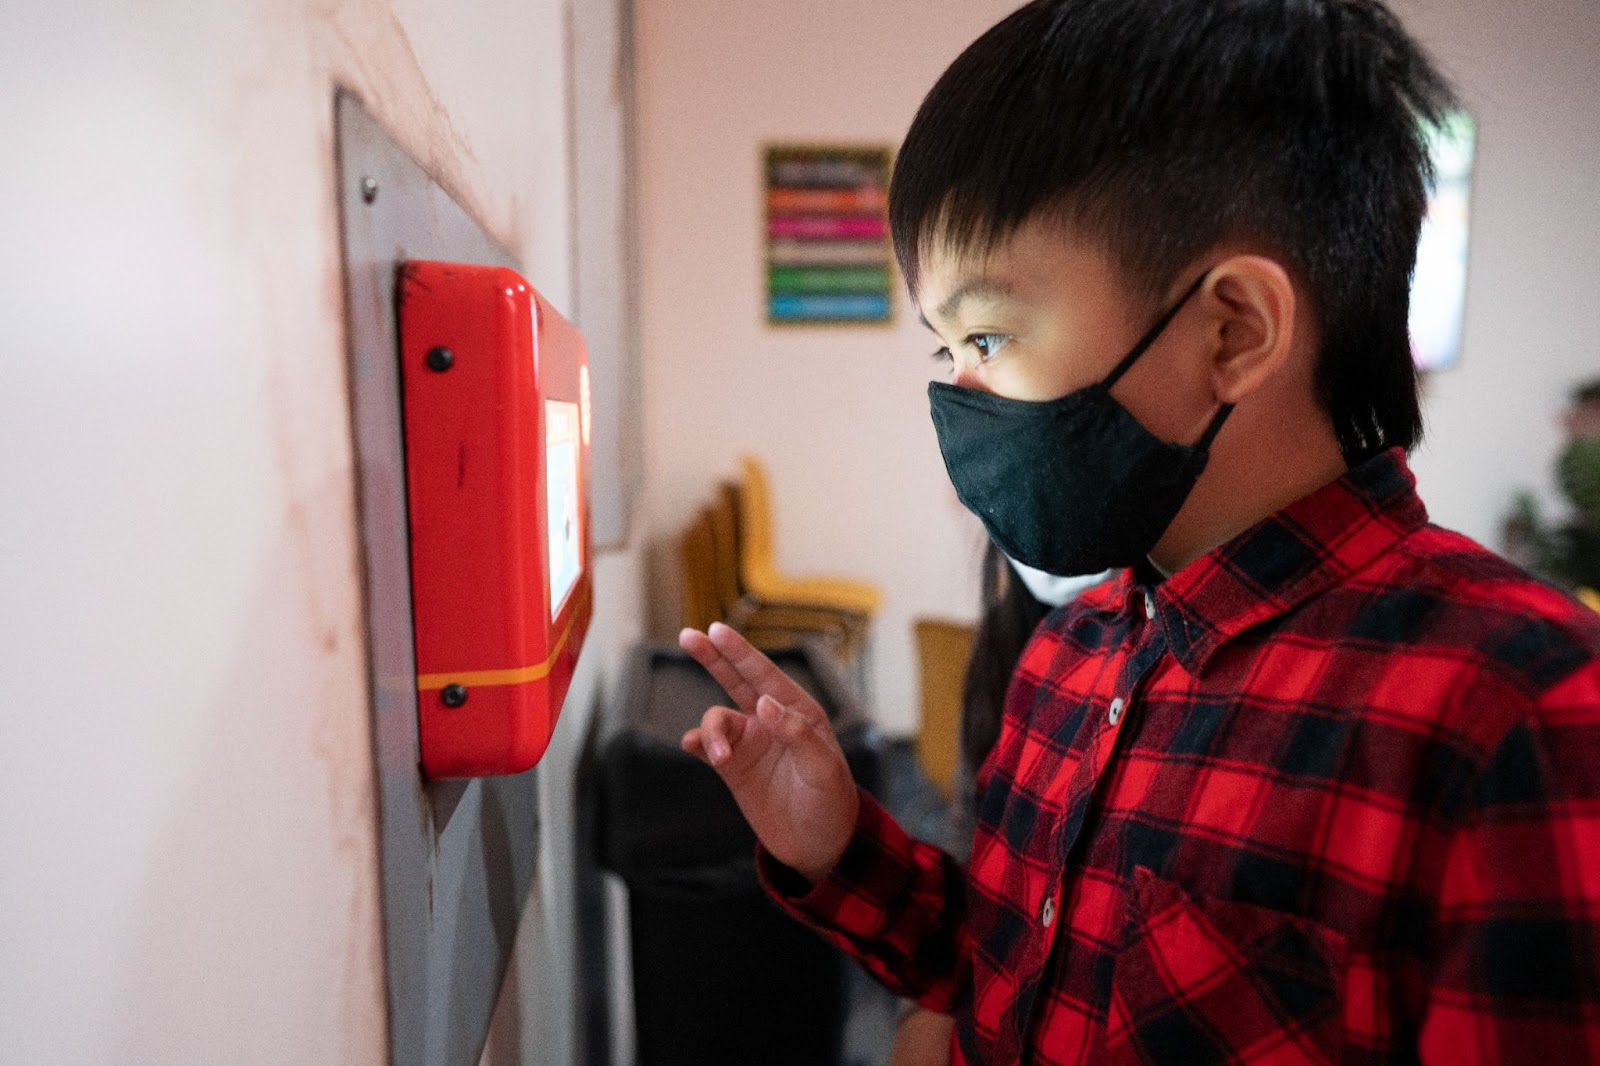 a young boy, approximately 6-8 years old in a red flannel button up shirt and a mask stands at a boop station in the employee micro-breakroom. His hand reaches out to touch the bright red boop station to take the cone color test.